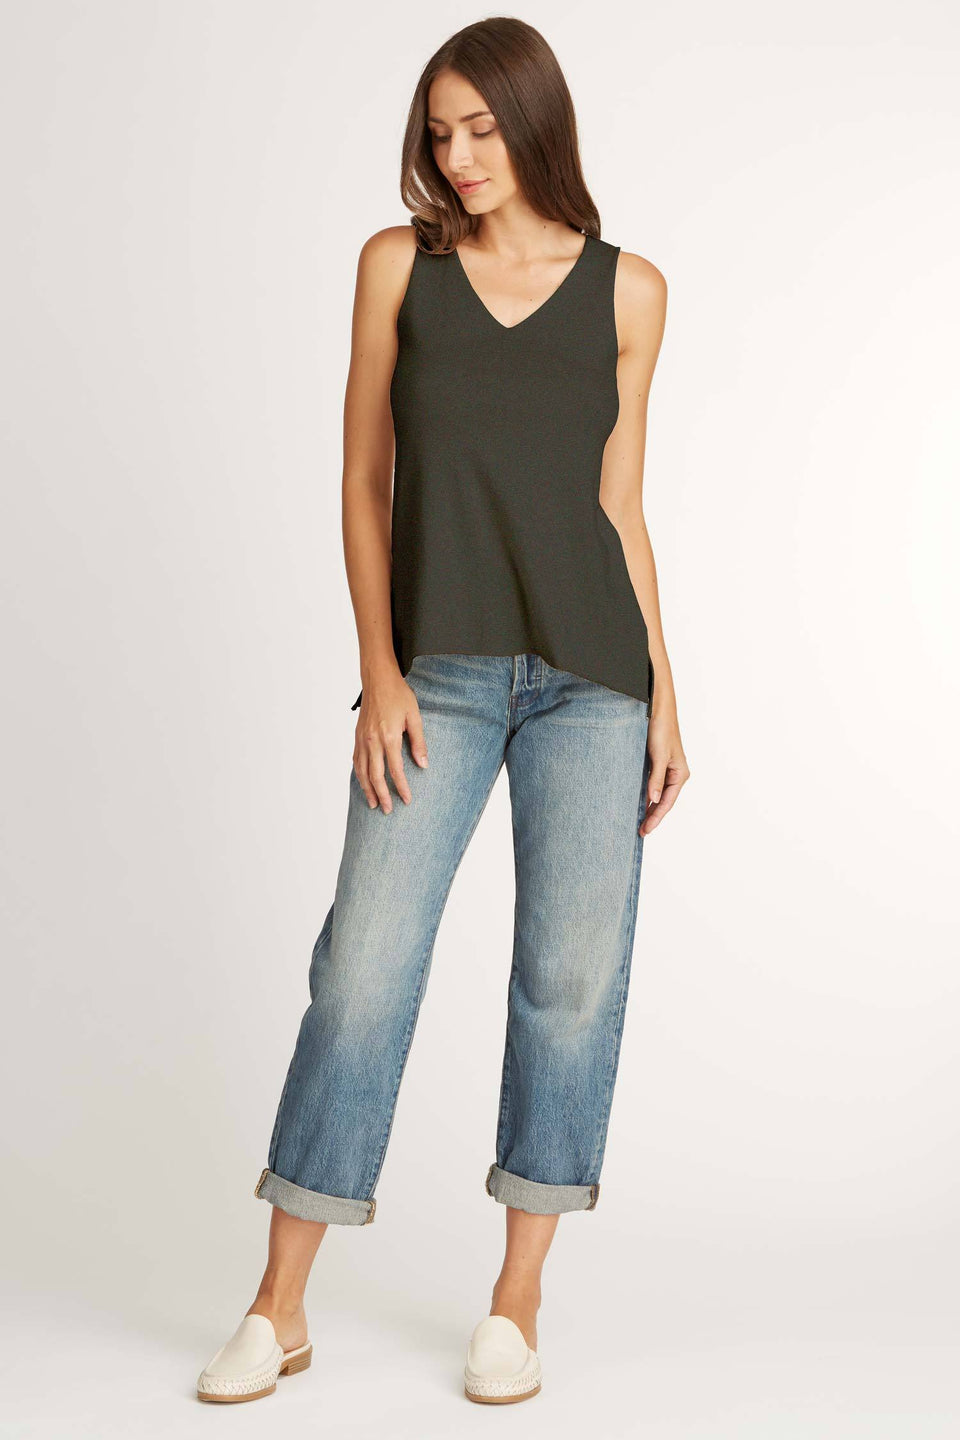 Knit Sleeveless V Neck Top in Noir